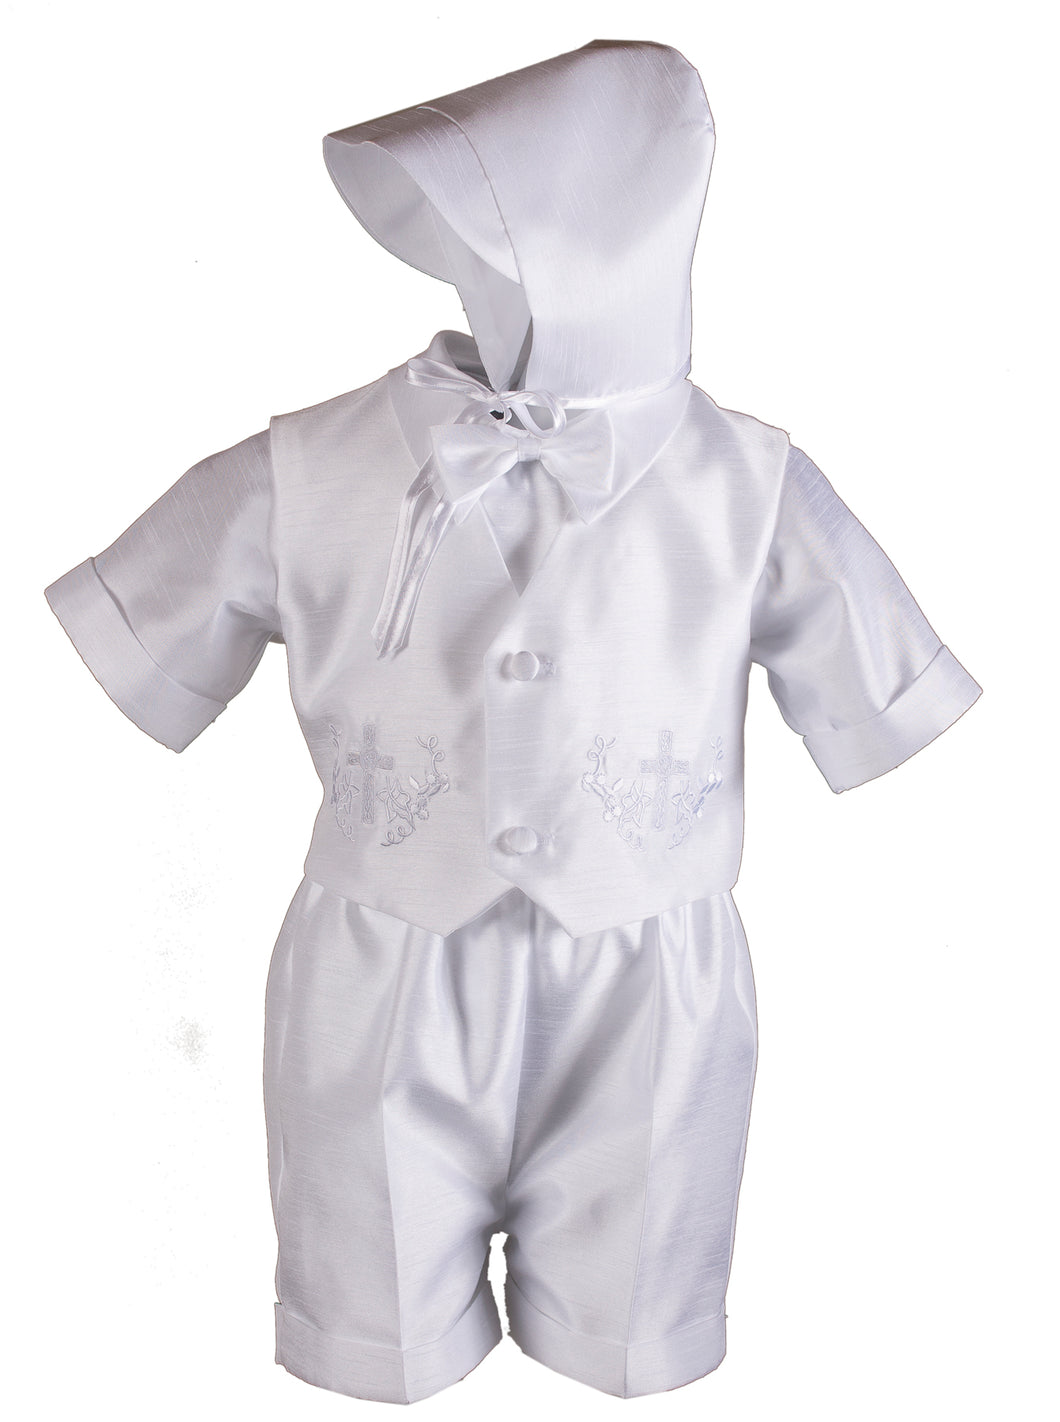 White Shantung 4 Piece Baptismal Short Set with Cross & Grape Vines